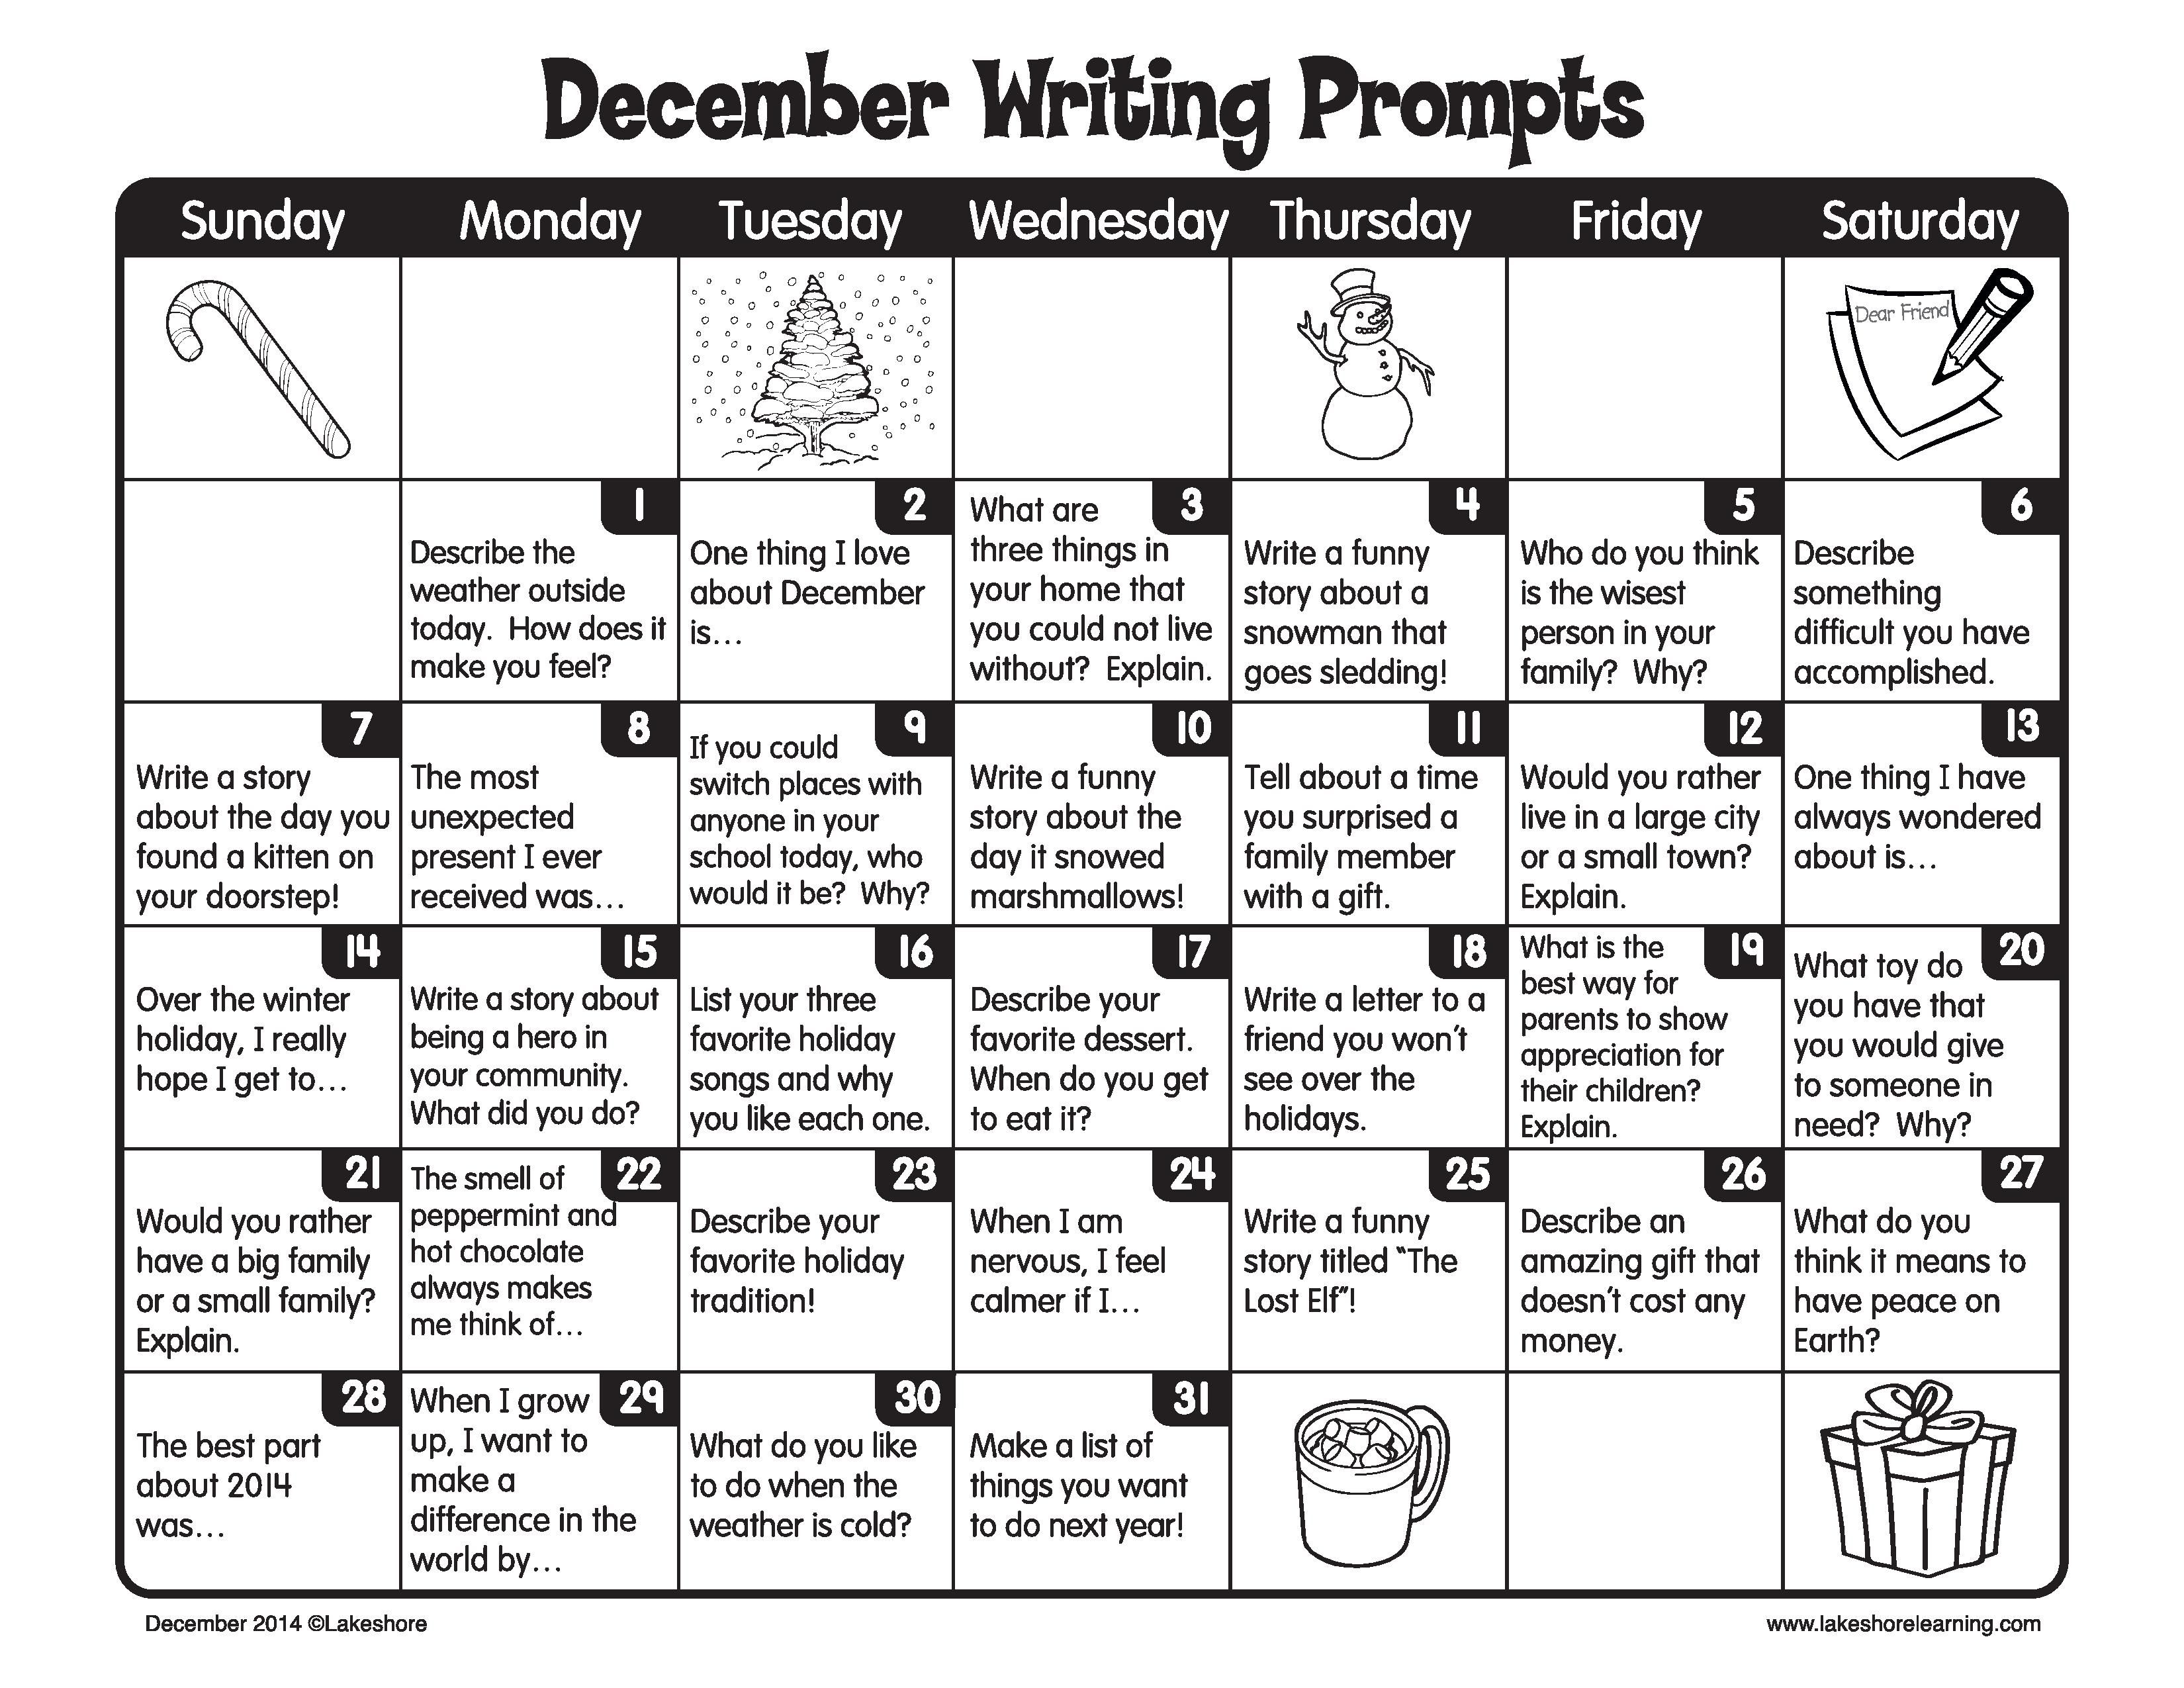 December Is A Great Time For Kids To Get Creative And Write Every Day